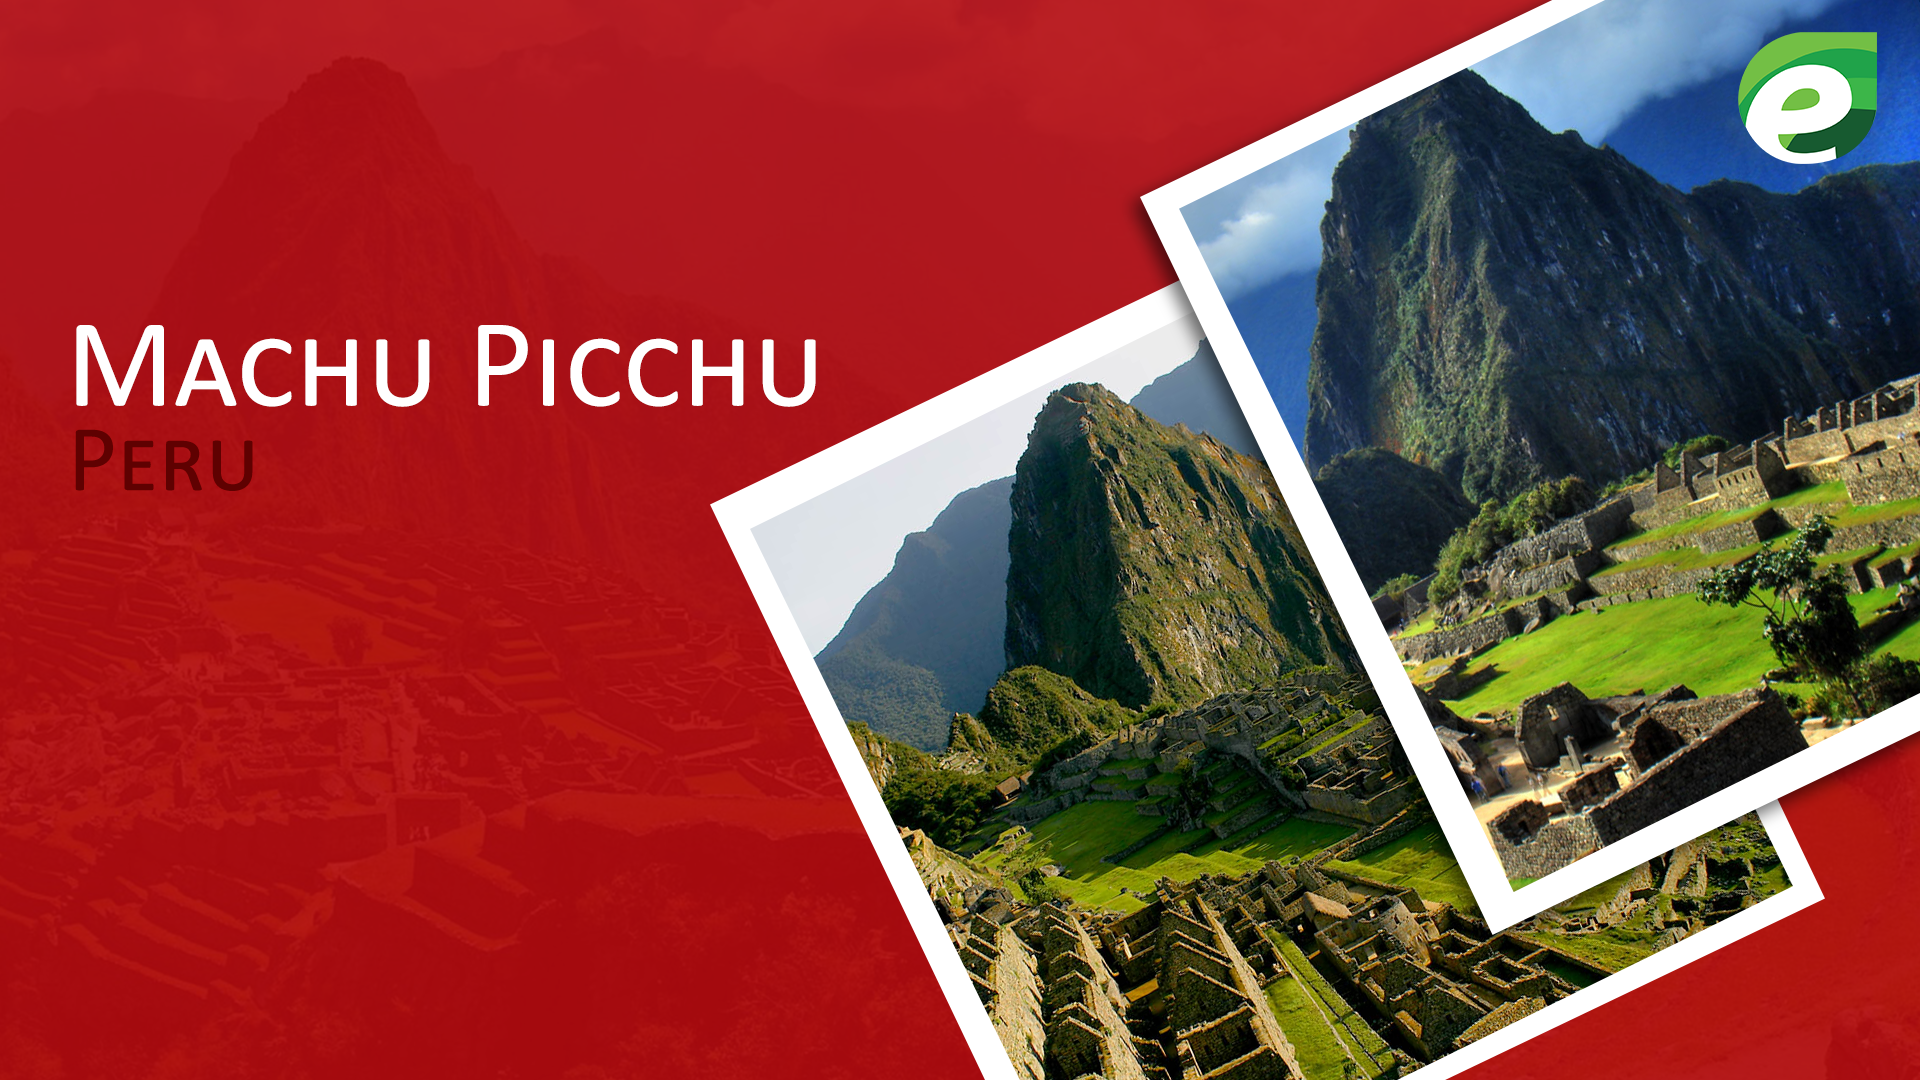 historical sites to visit- Machu Picchu, Peru